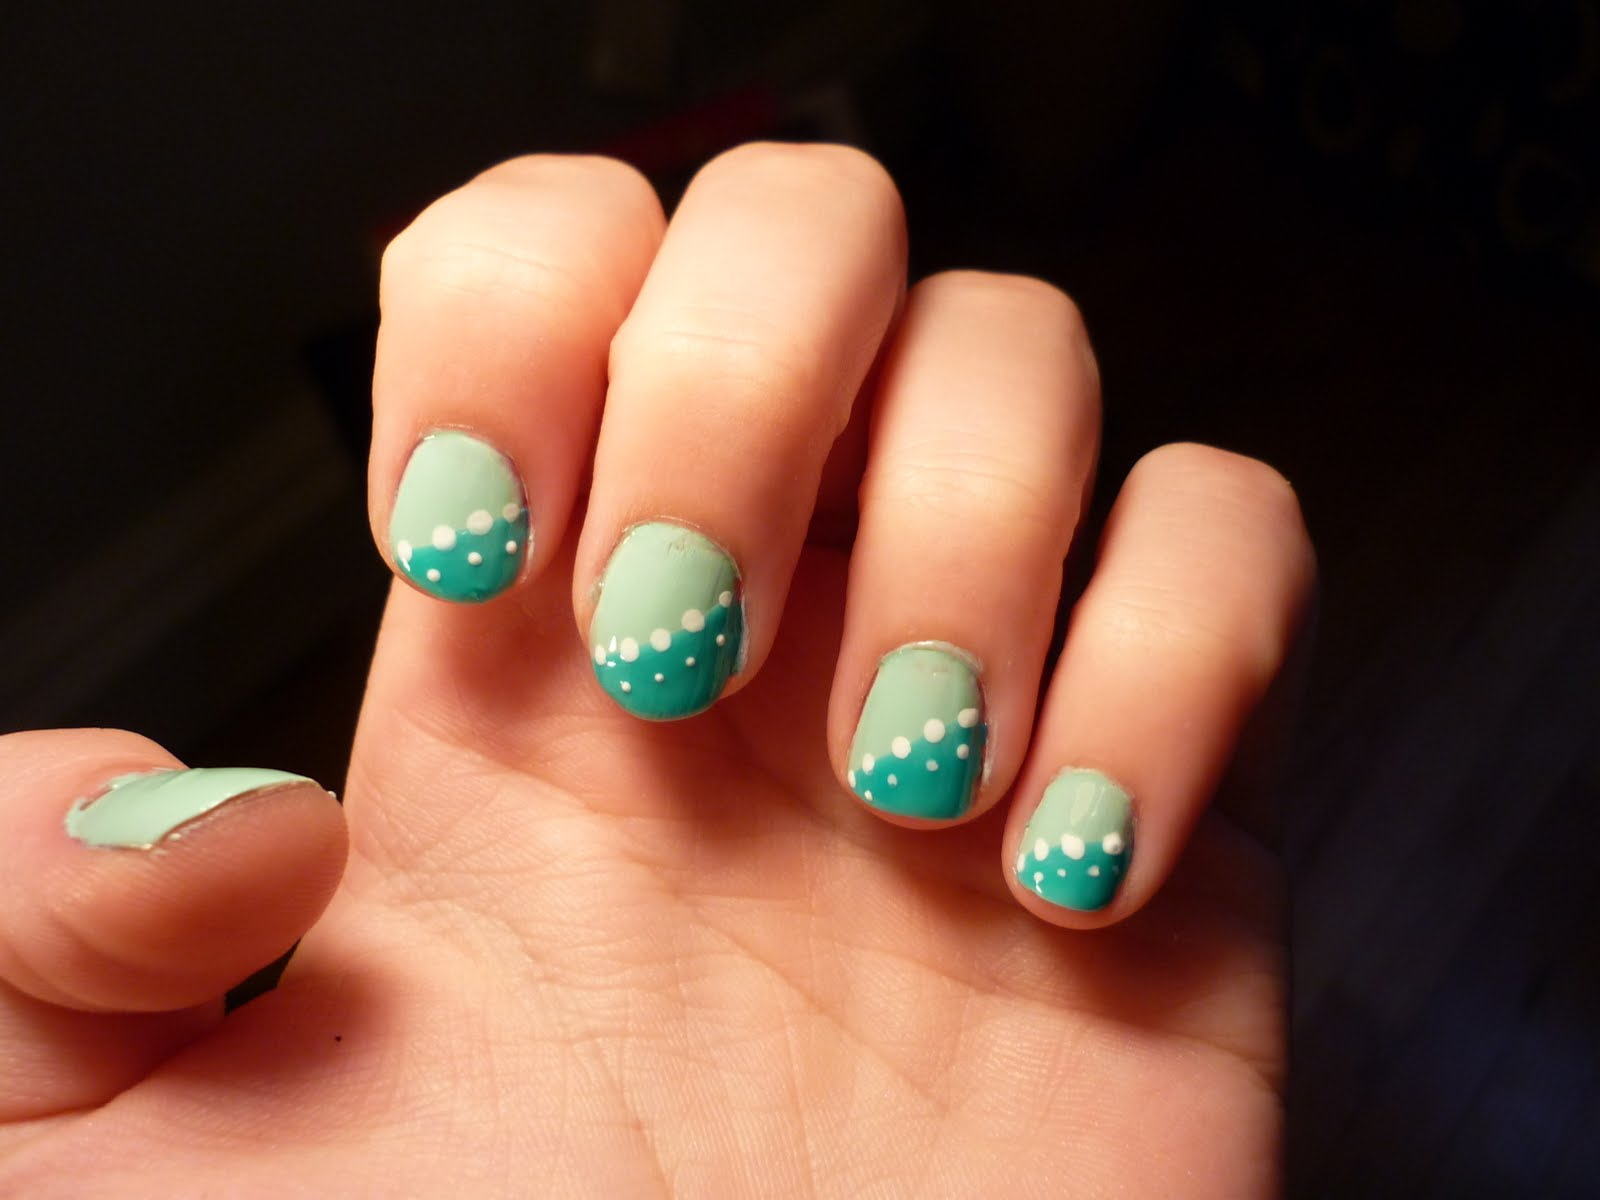 Simple nail design ideas simple nail art ideas simple nail design ideas prinsesfo Images